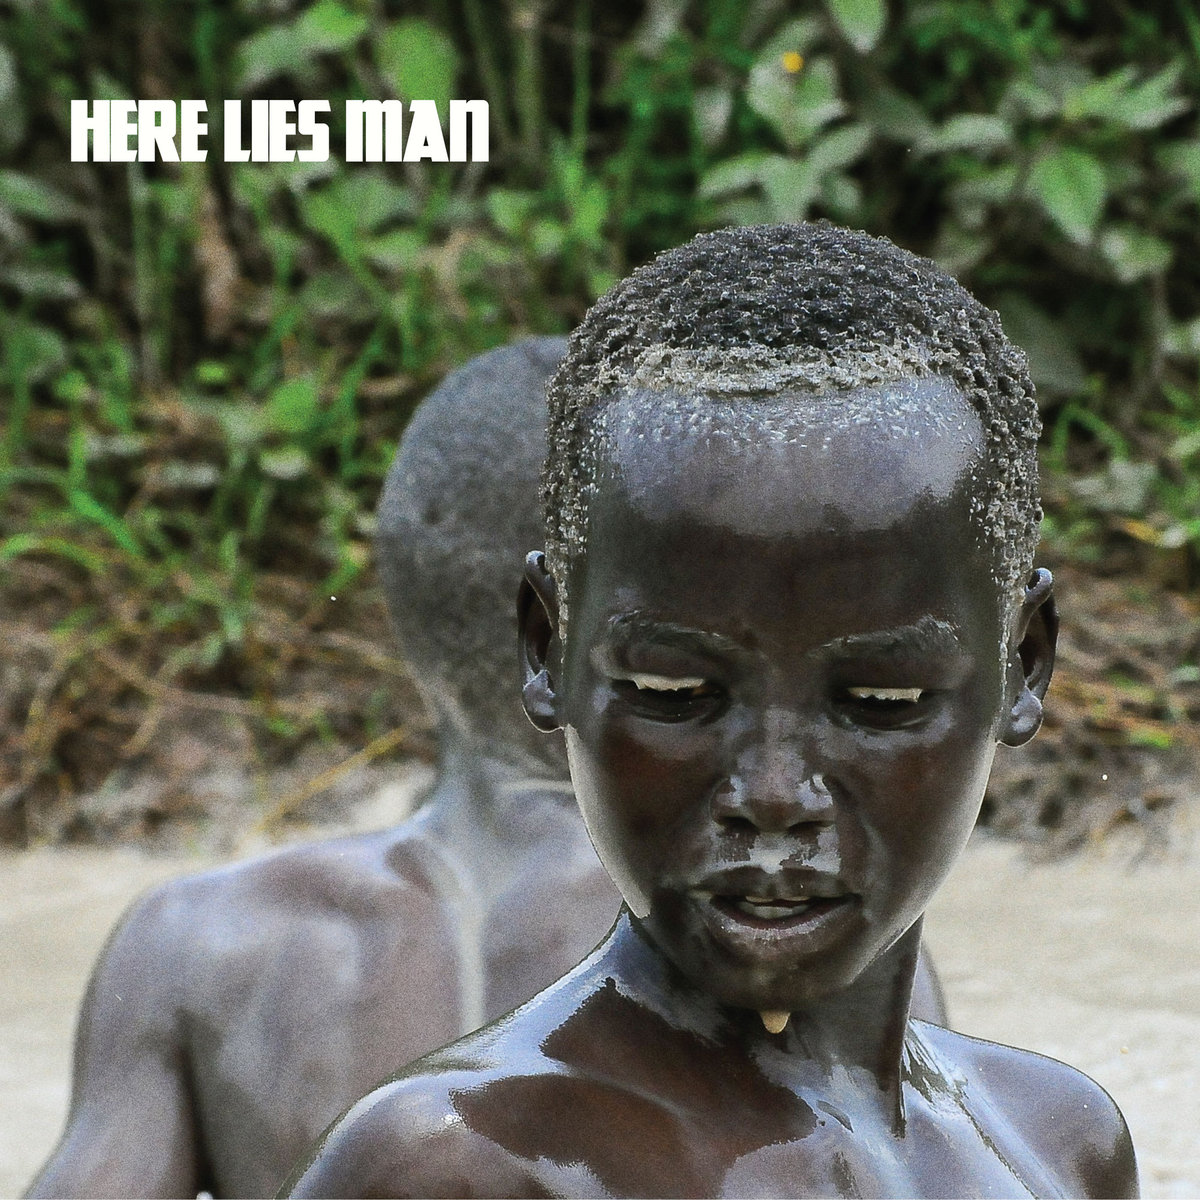 HERE LIES MAN - HERE LIES MAN (RIDING EASY RECORDS, 2017)